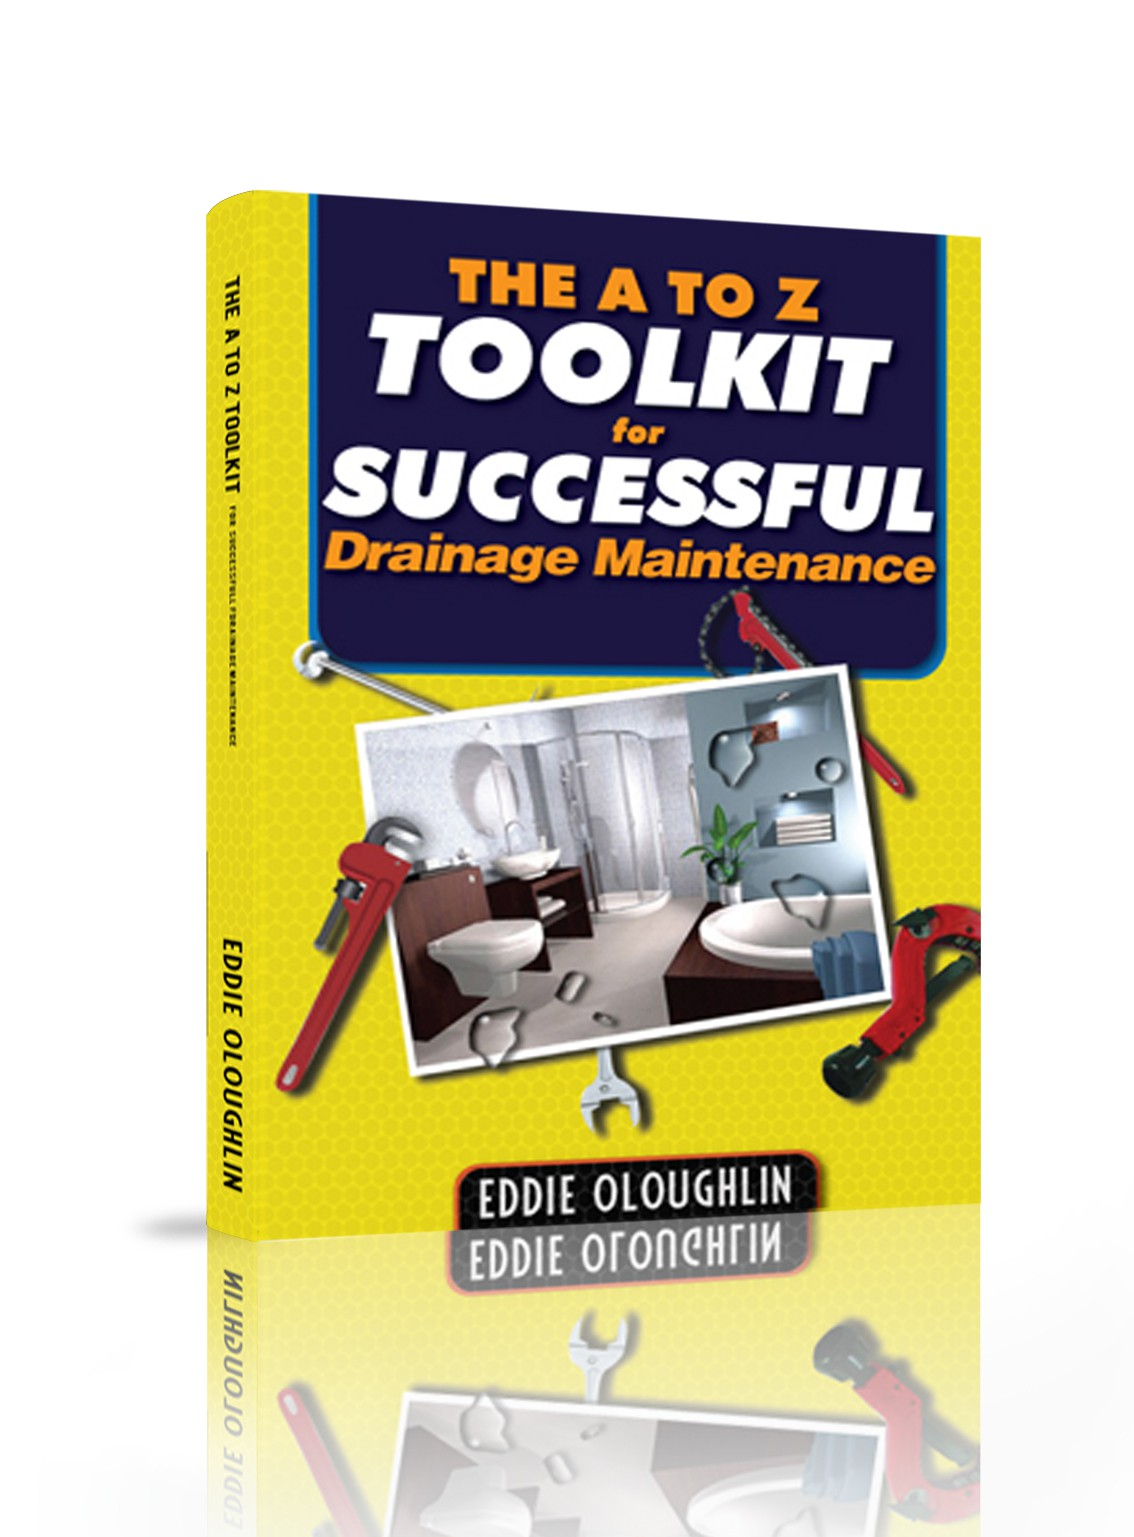 New print or packaging design wanted for The A toZ Toolkit For Successful Drainage Management